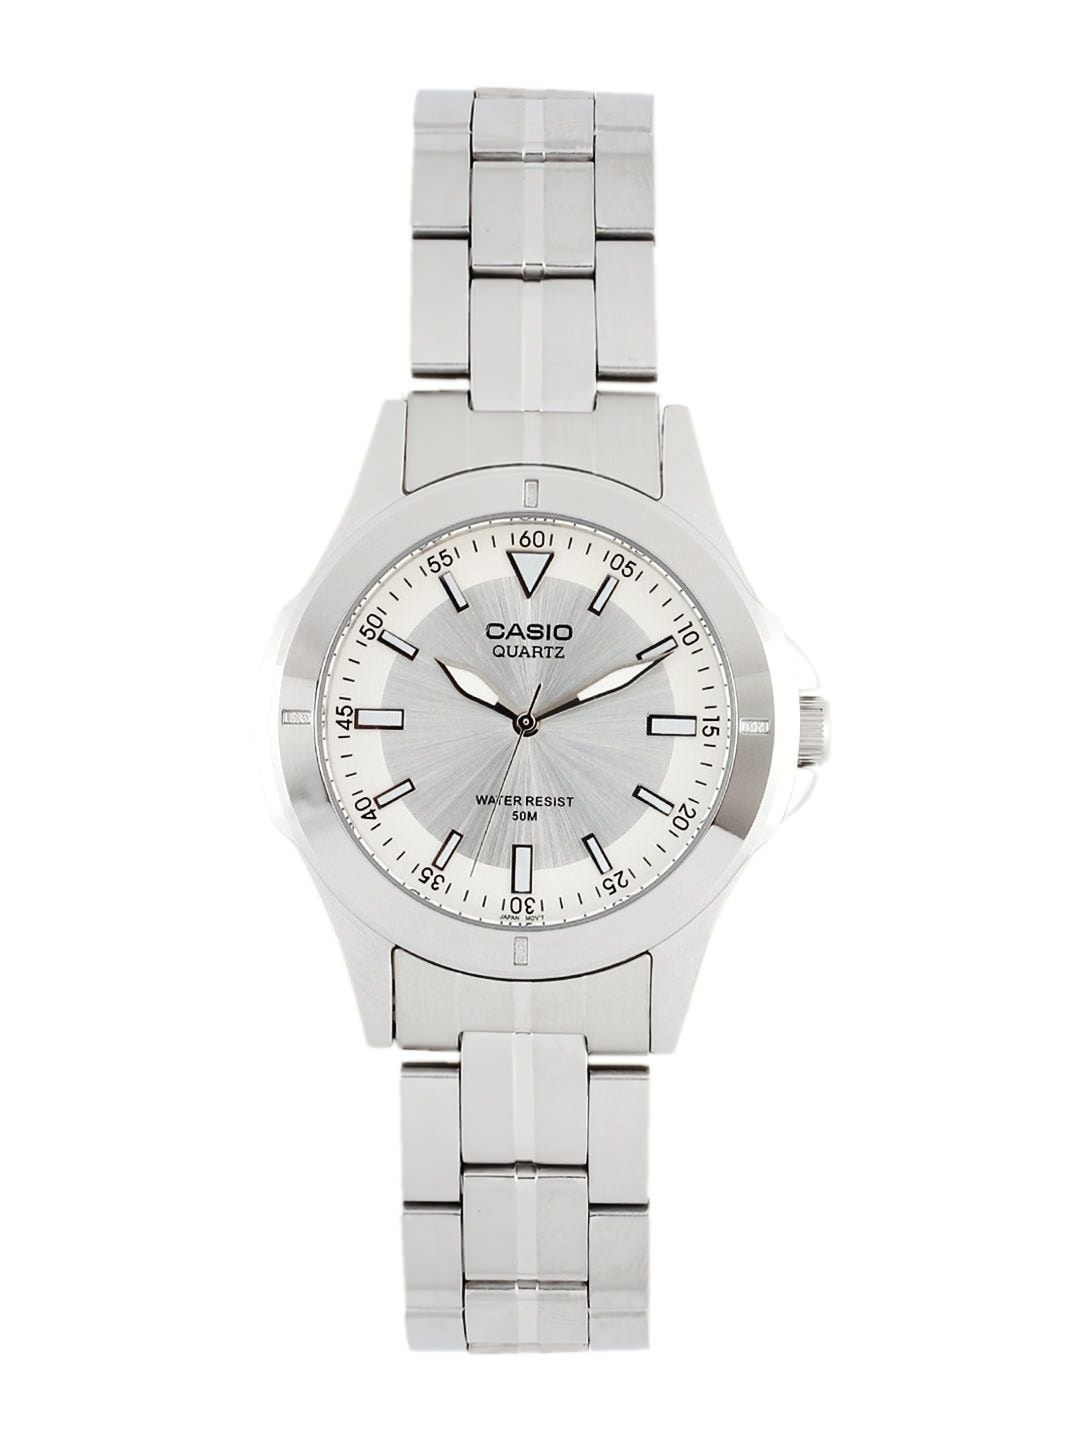 CASIO Men Silver-Toned Dial Watch A344